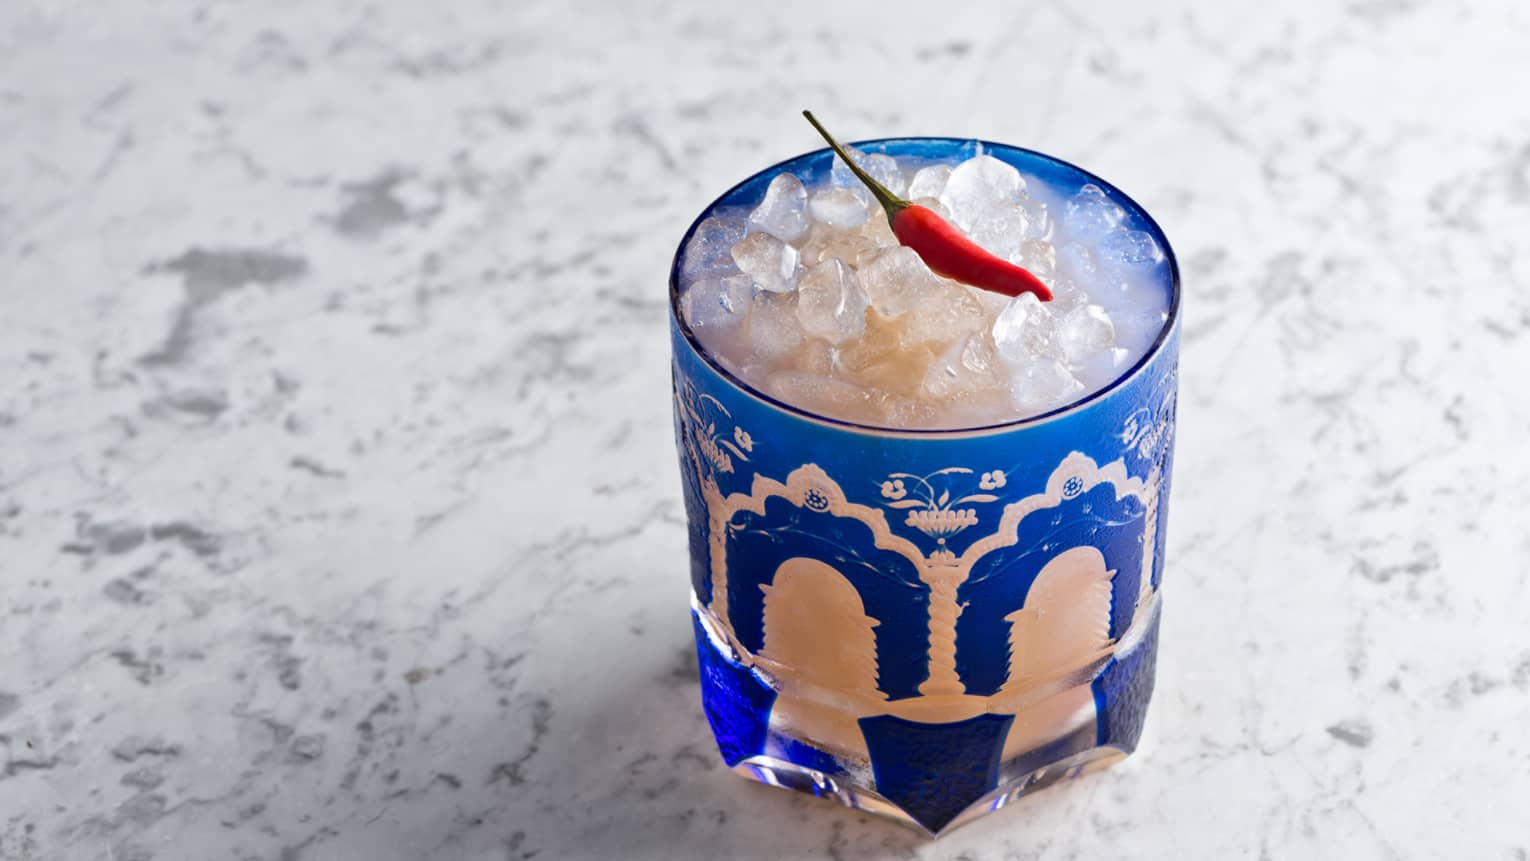 Kalocsai Paprika cocktail on ice in blue glass, small red hot pepper garnish